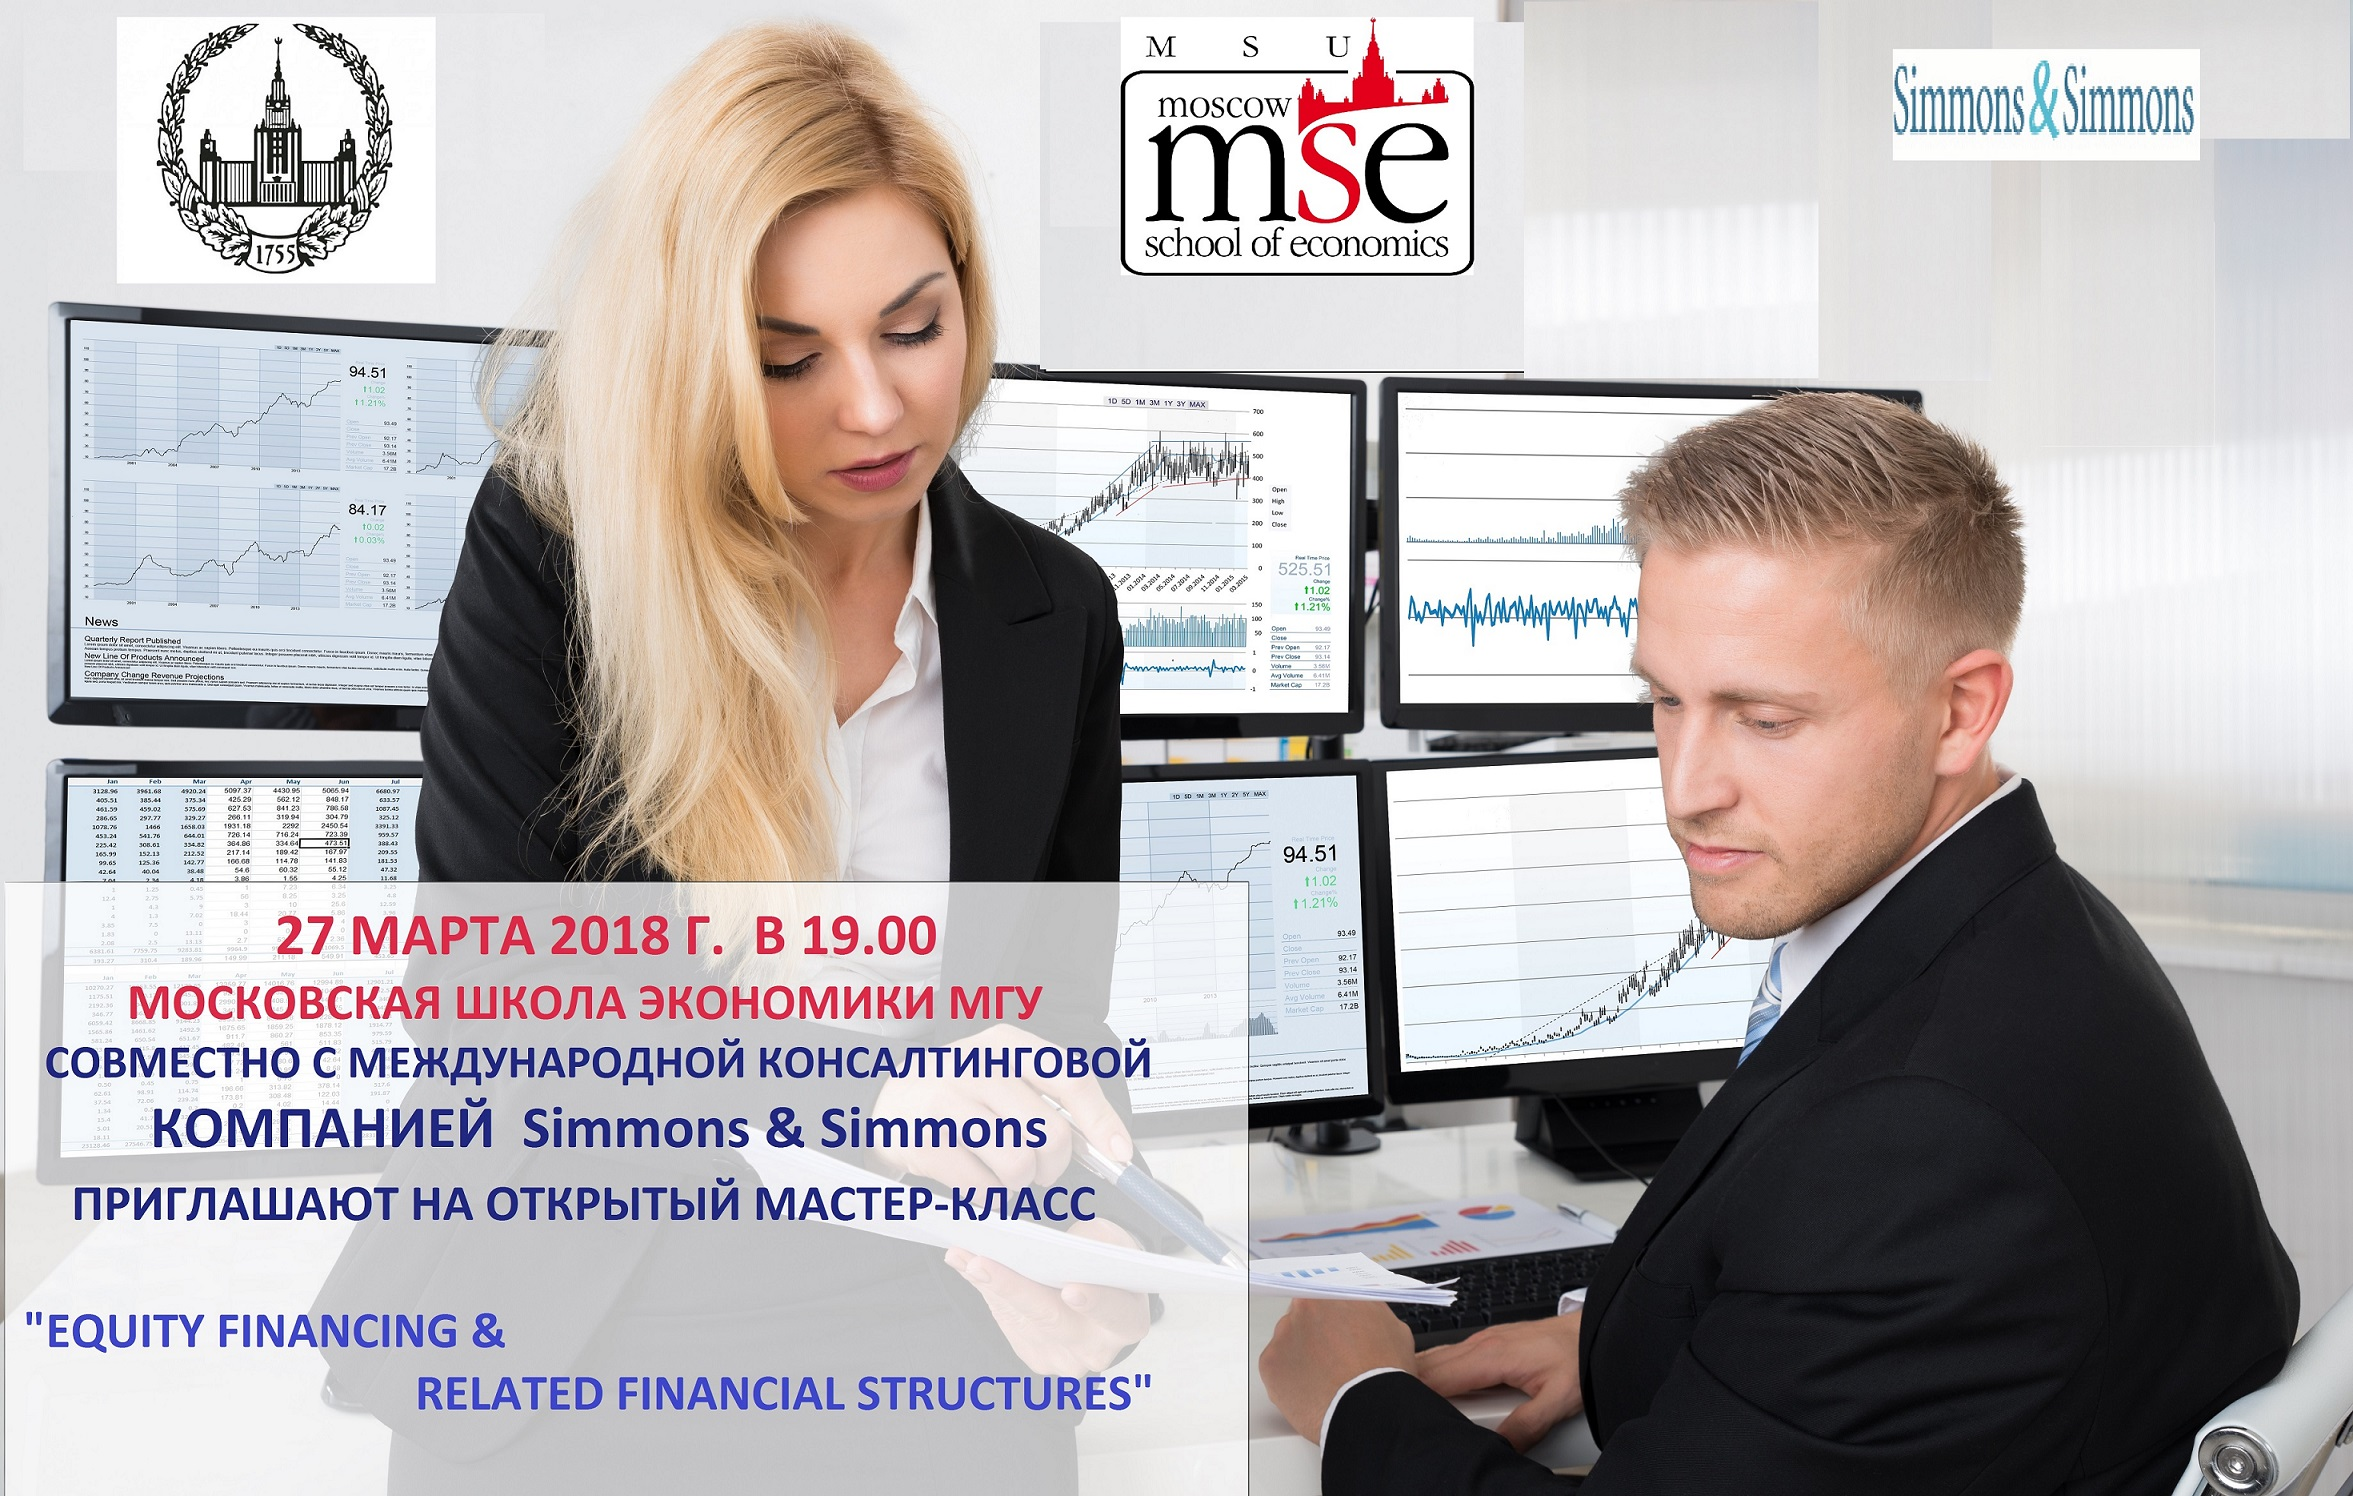 Equity Financing and Related Financial Structures